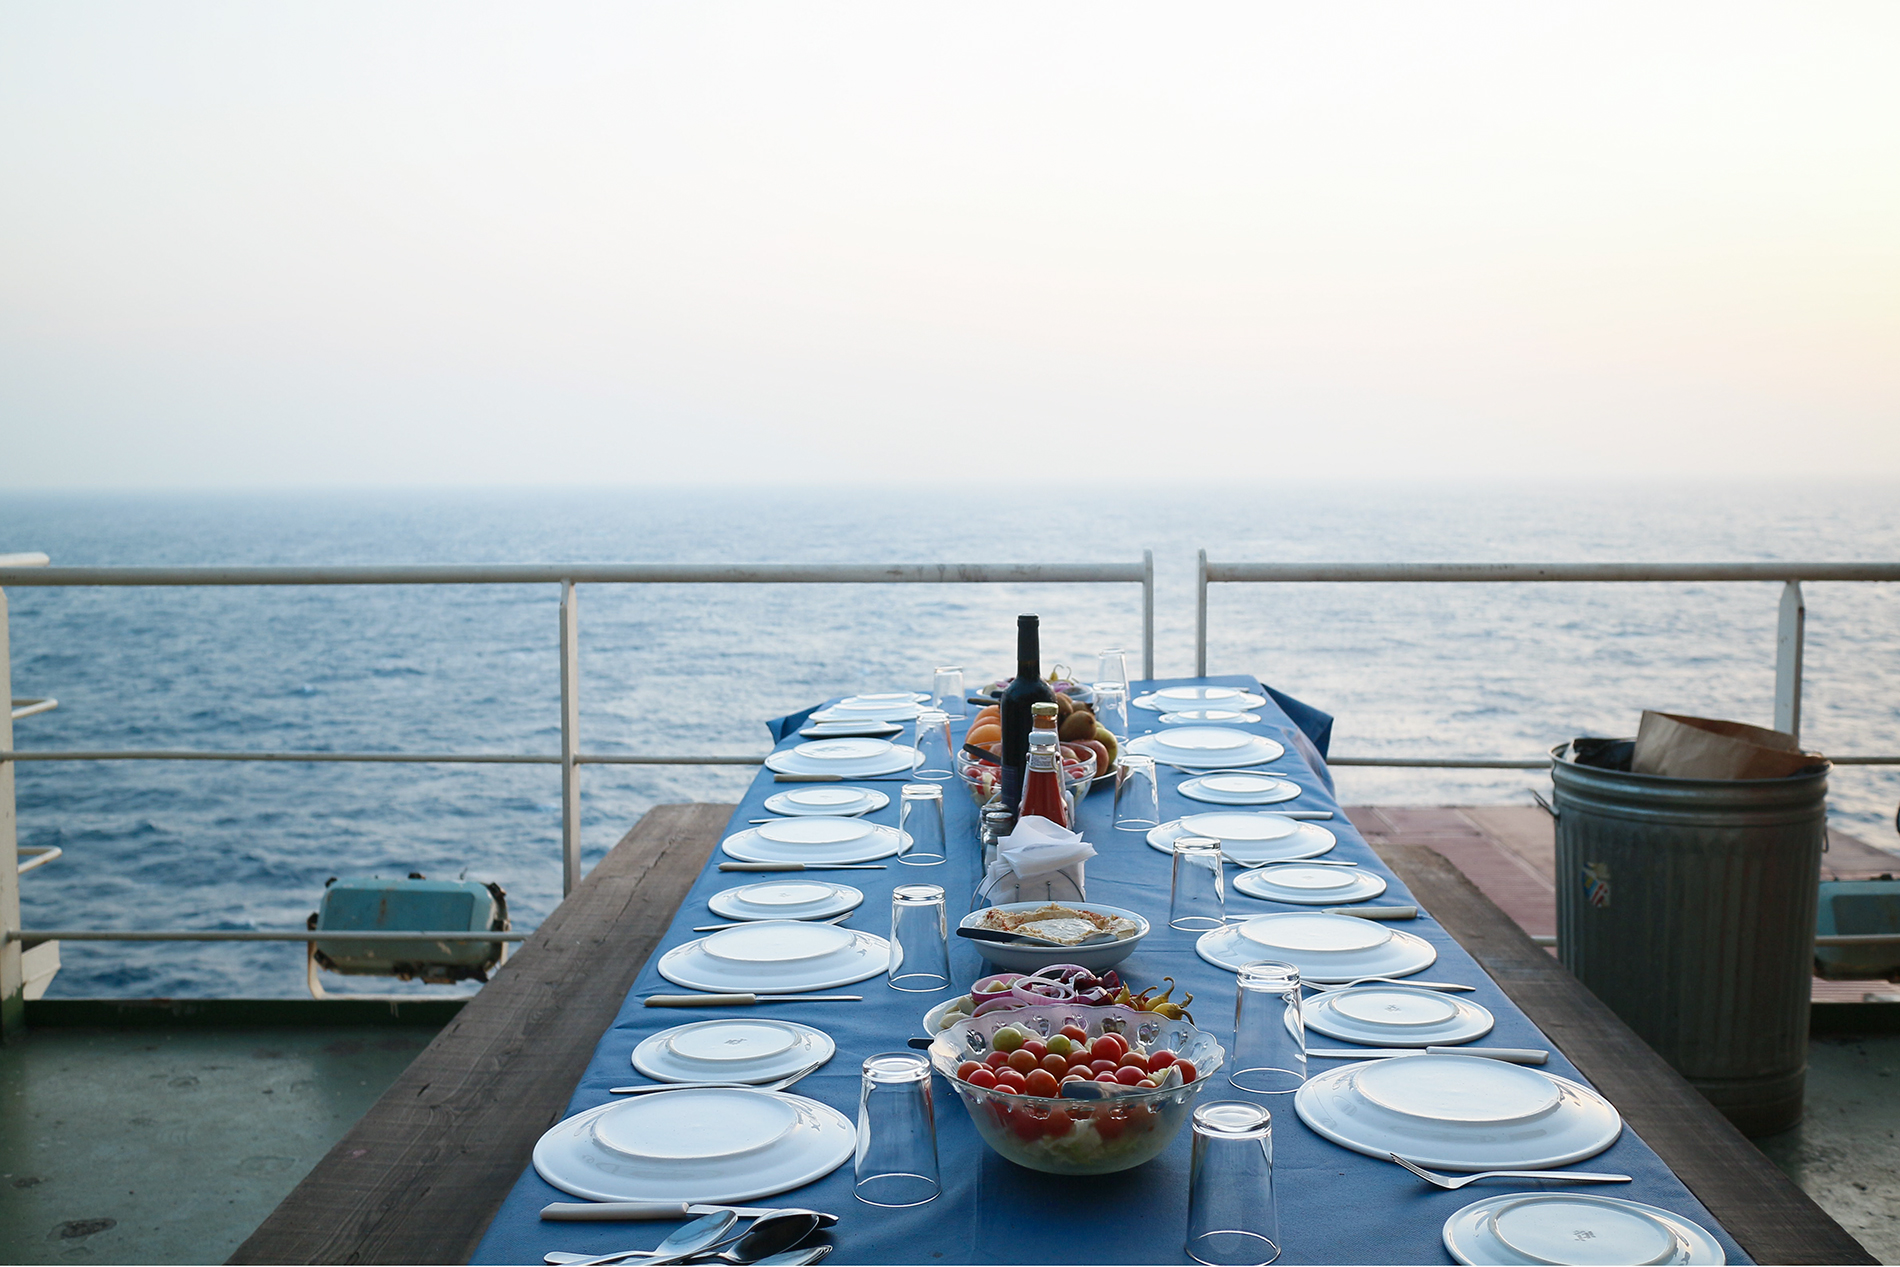 Banquette In The Gulf Of Aden Photo: Mari Bastashevski